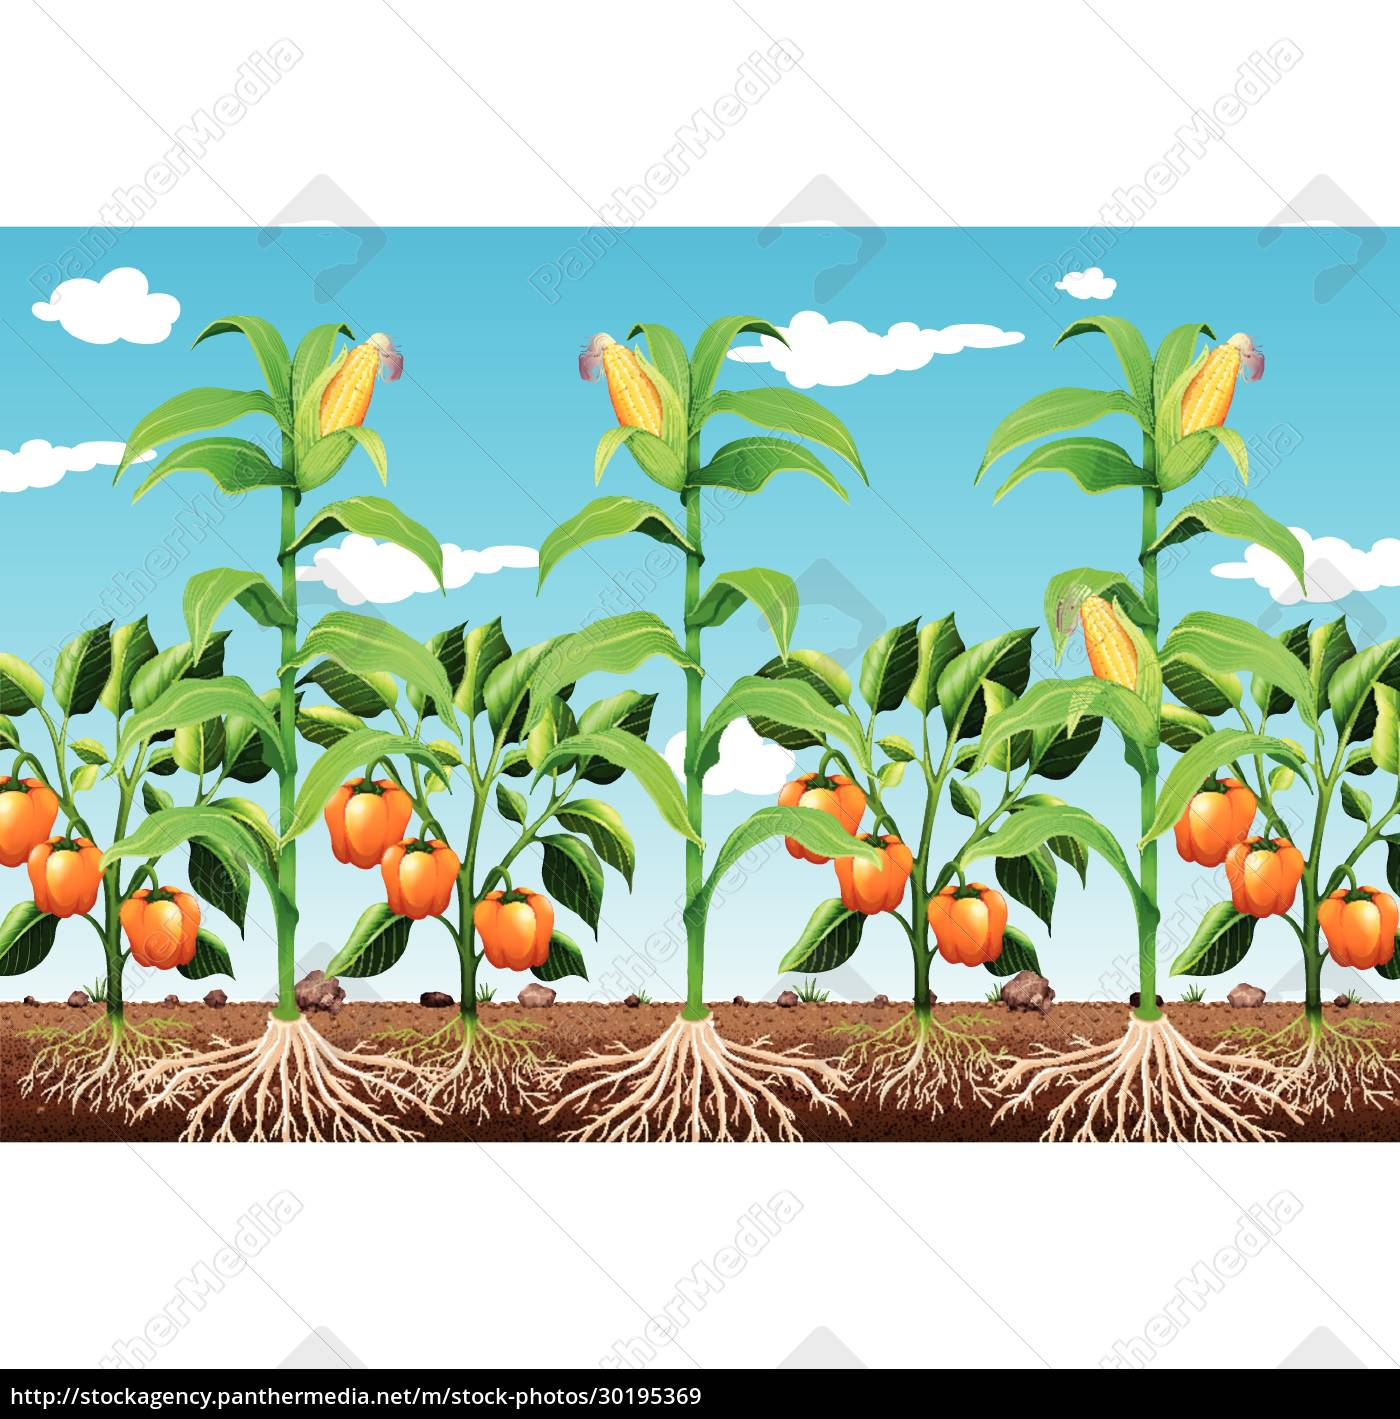 a, farming, plants, and, root - 30195369